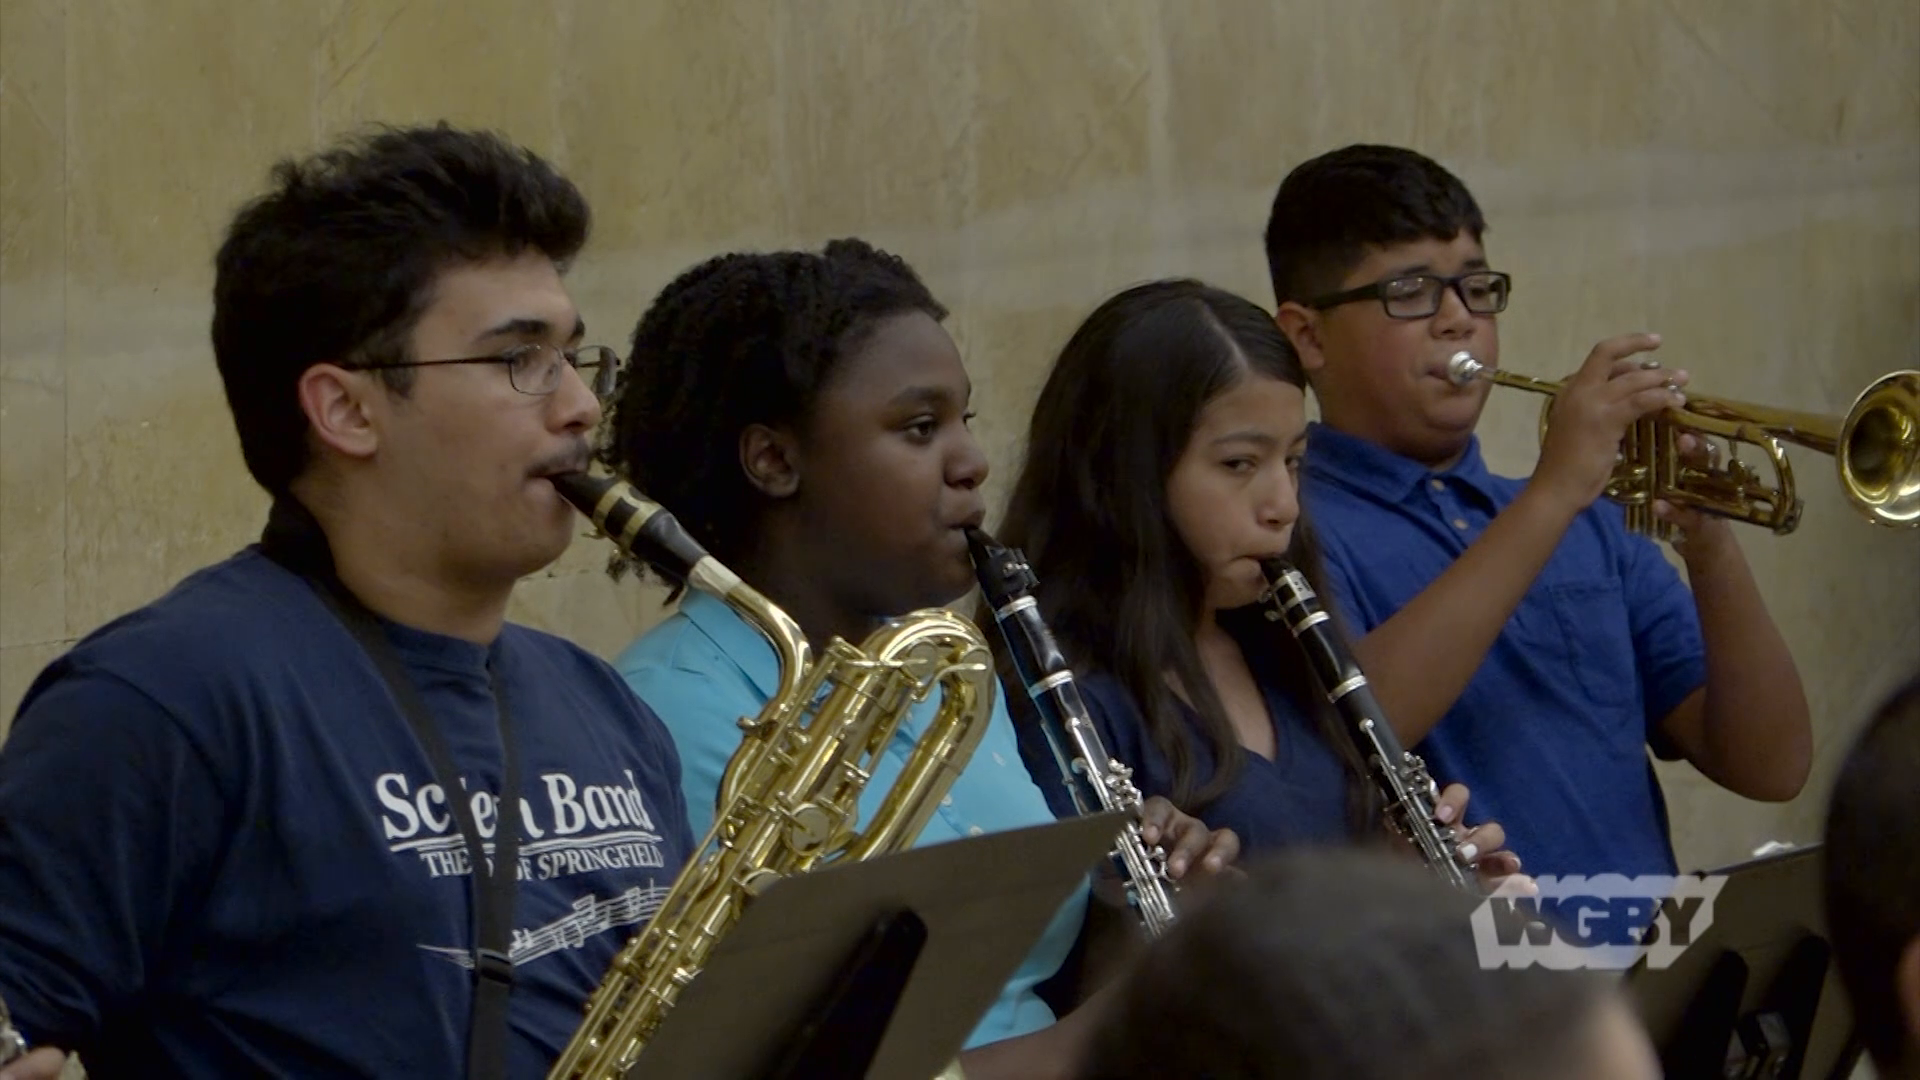 Join the Community Music School's Sonido Musica summer camp to see how the innovative program brings arts education to Springfield students.